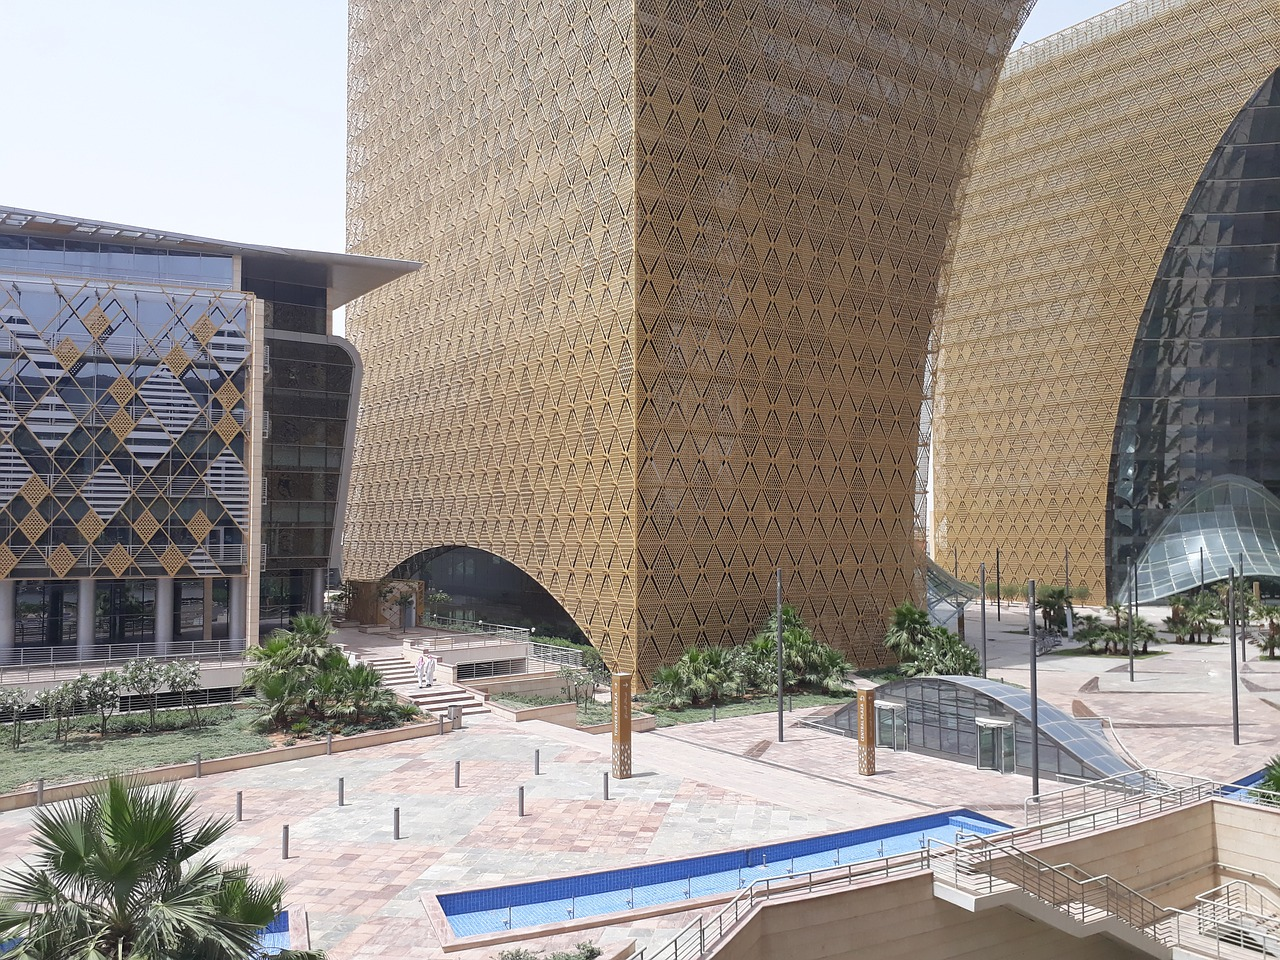 Riyadh Travel Guide for First-Timers